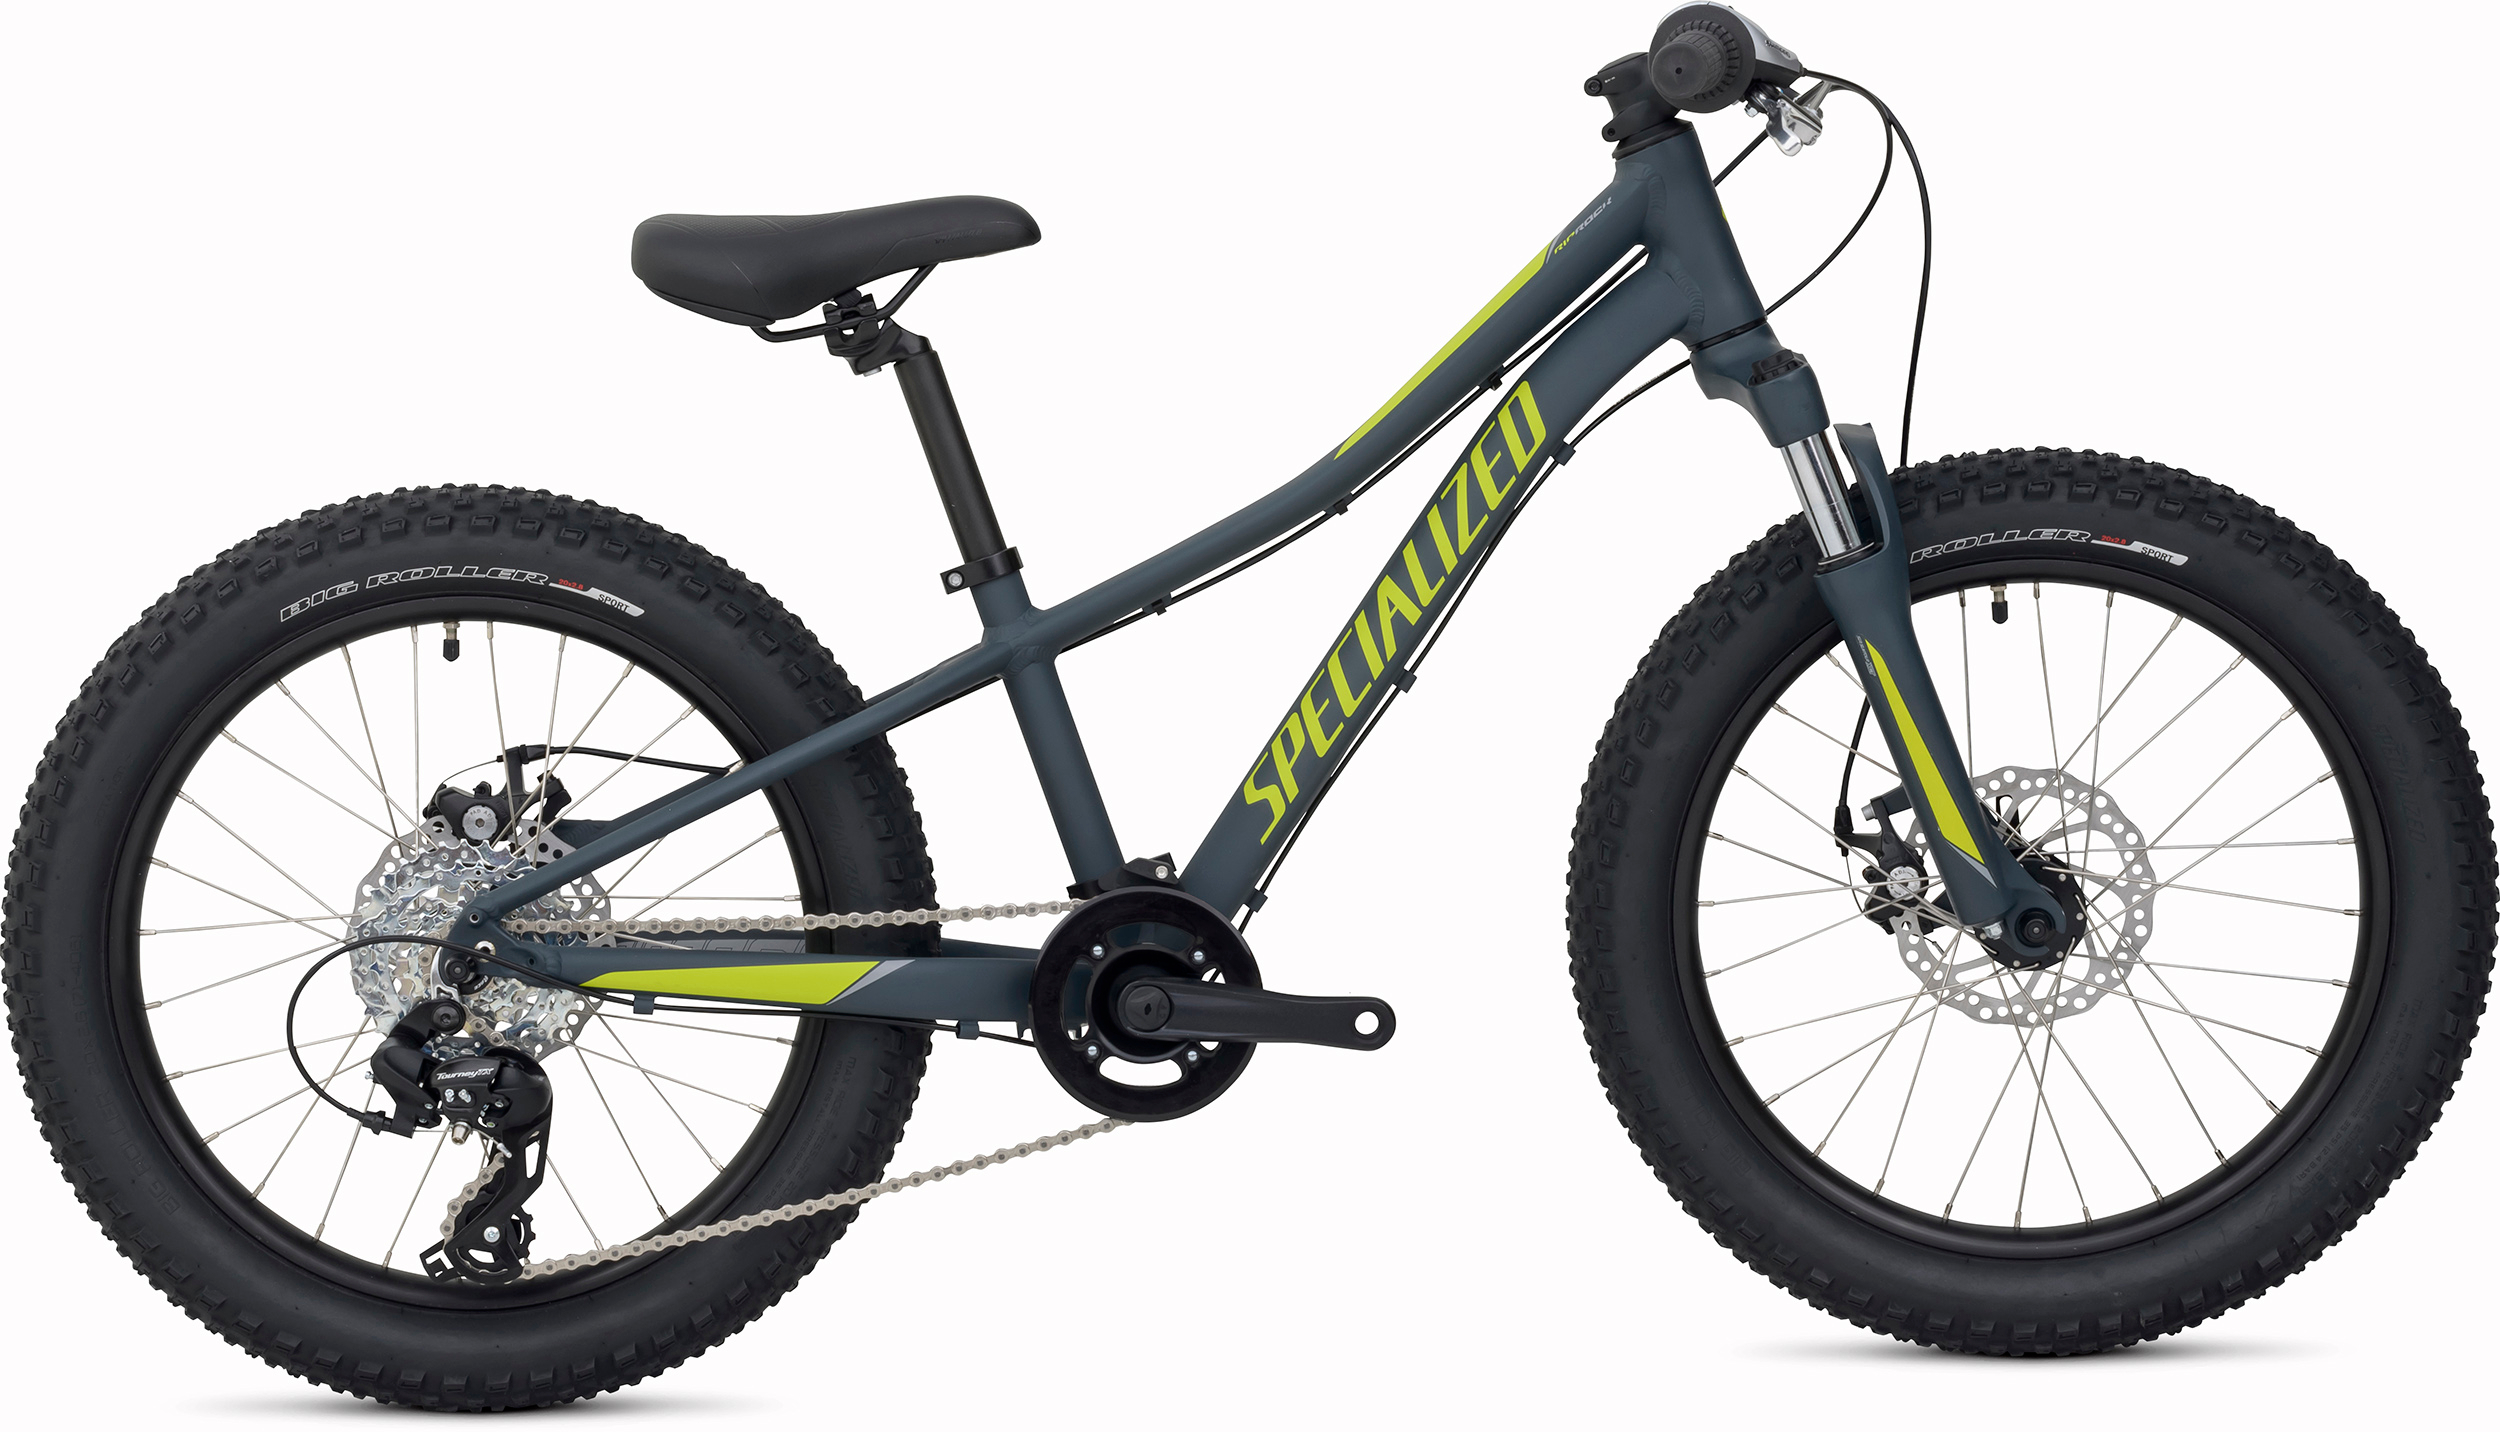 Specialized Riprock 20 Carbon Gray/Hyper Green/Cool Gray 2019 - 20 -  9